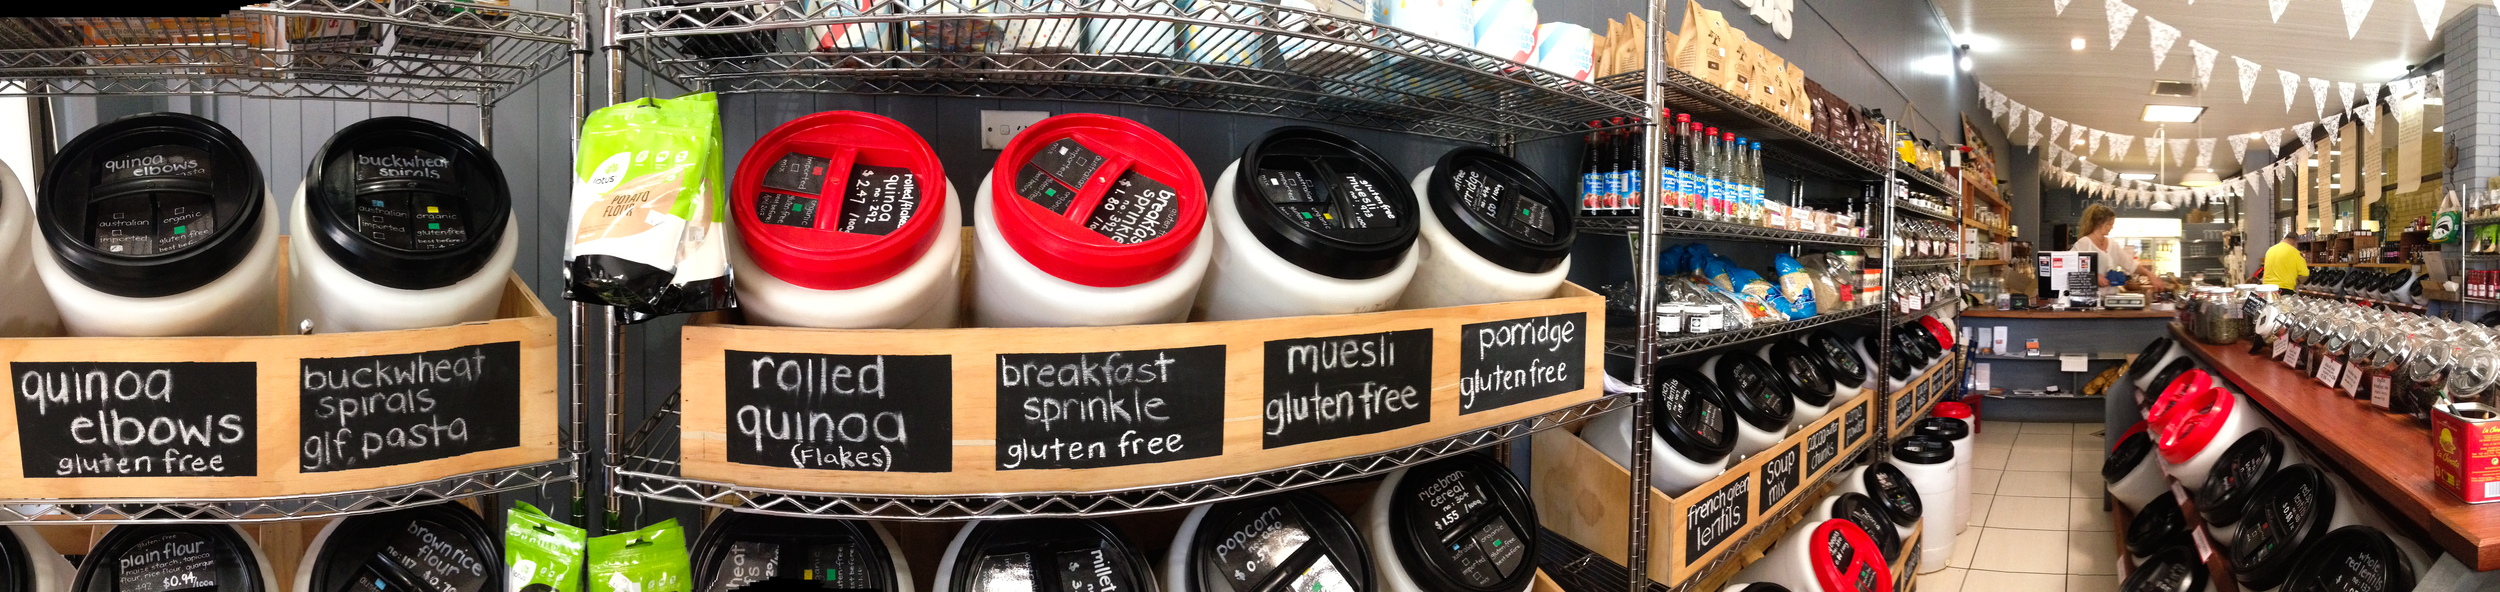 The Rustic pantry was a health nuts heaven, with bulk buy, self scoop of all sorts of goodies. Be sure to check it out if you are visiting Moruya.